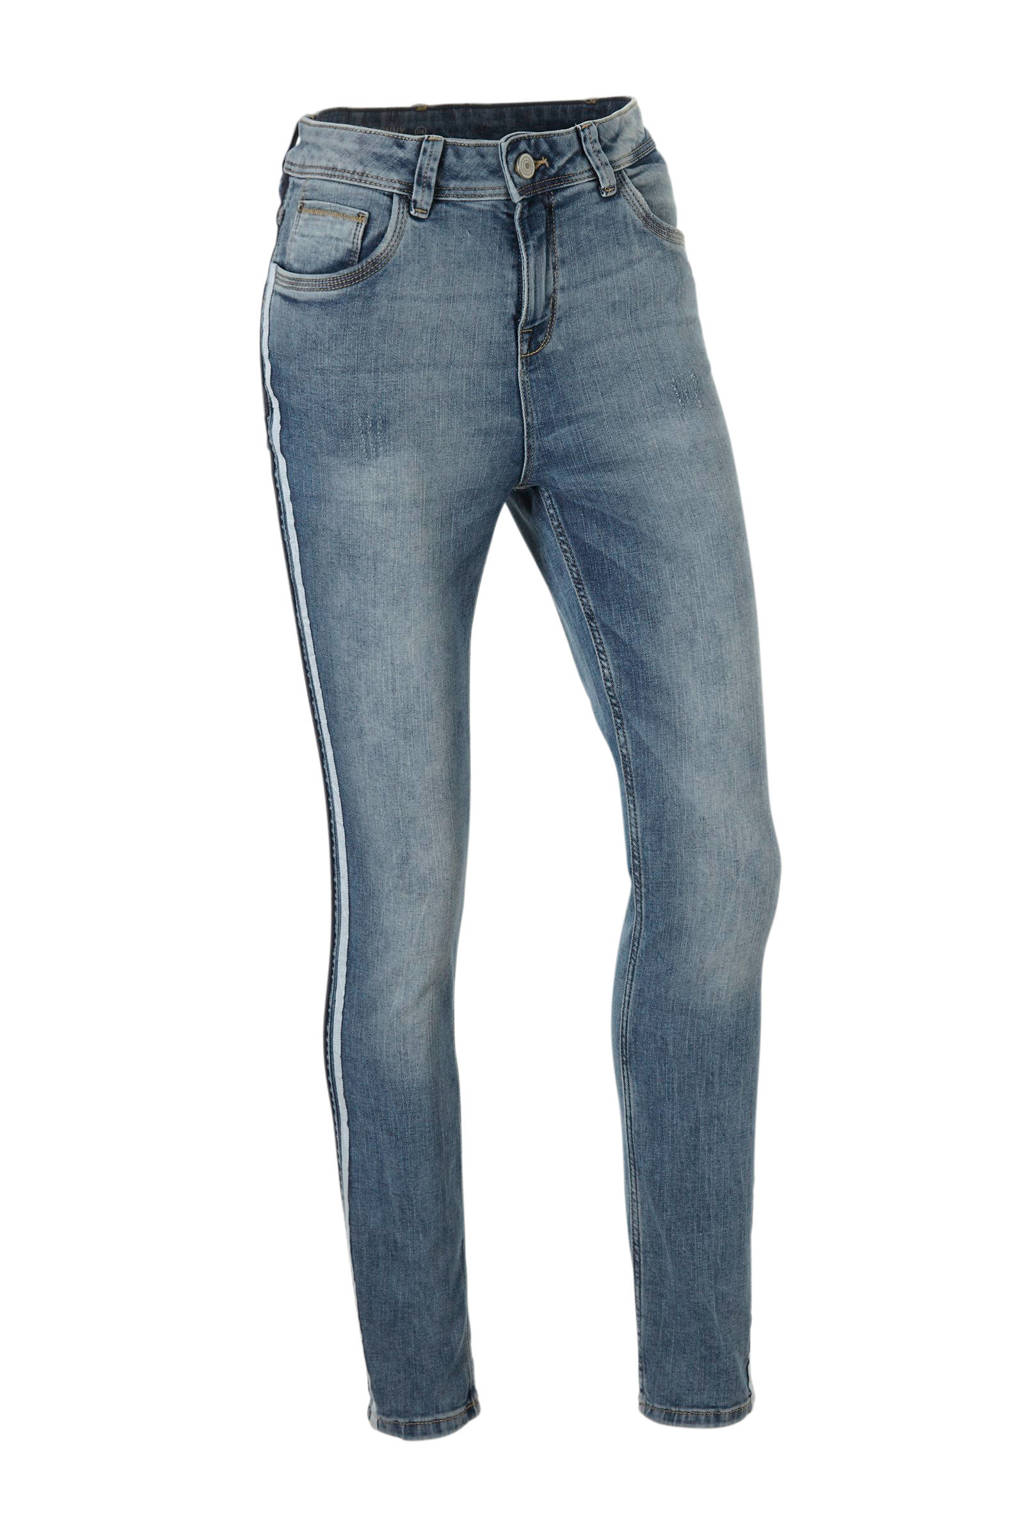 C&A Yessica high waist skinny jeans met zijstrepen, Stonewashed